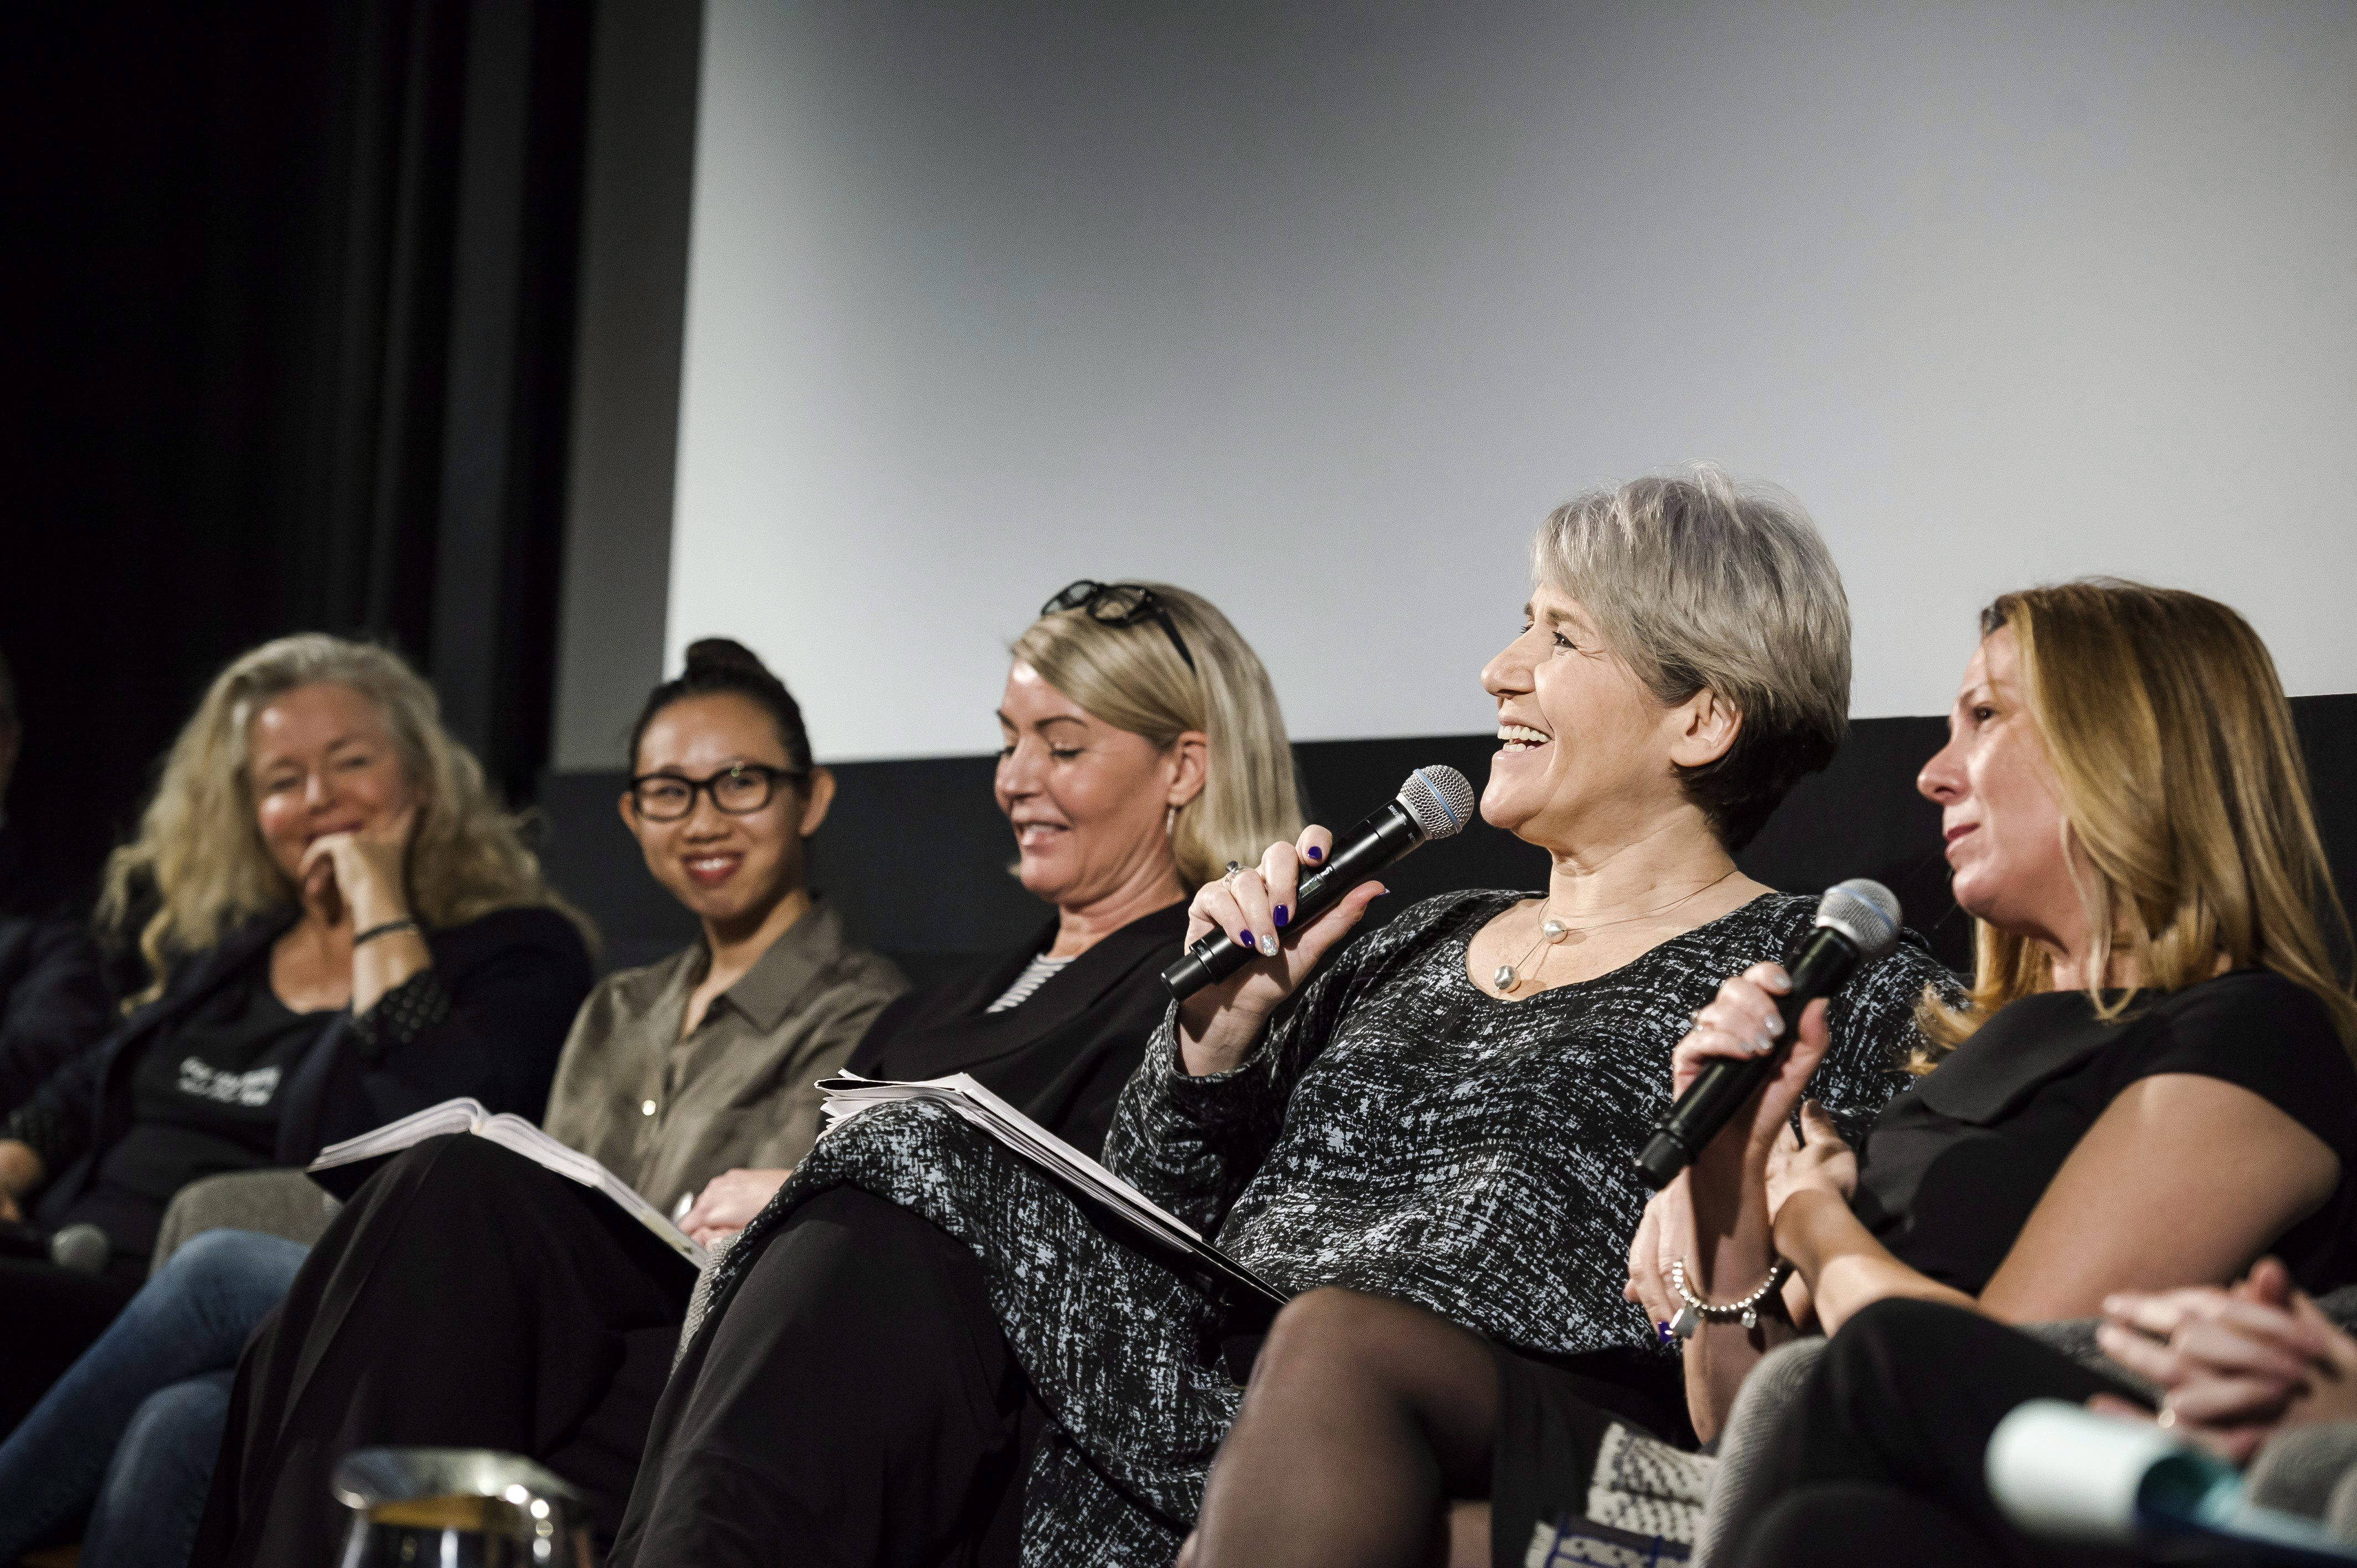 """Theresa Tova, National Treasurer and Toronto President of ACTRA, speaks at an event entitled """"Confronting..."""